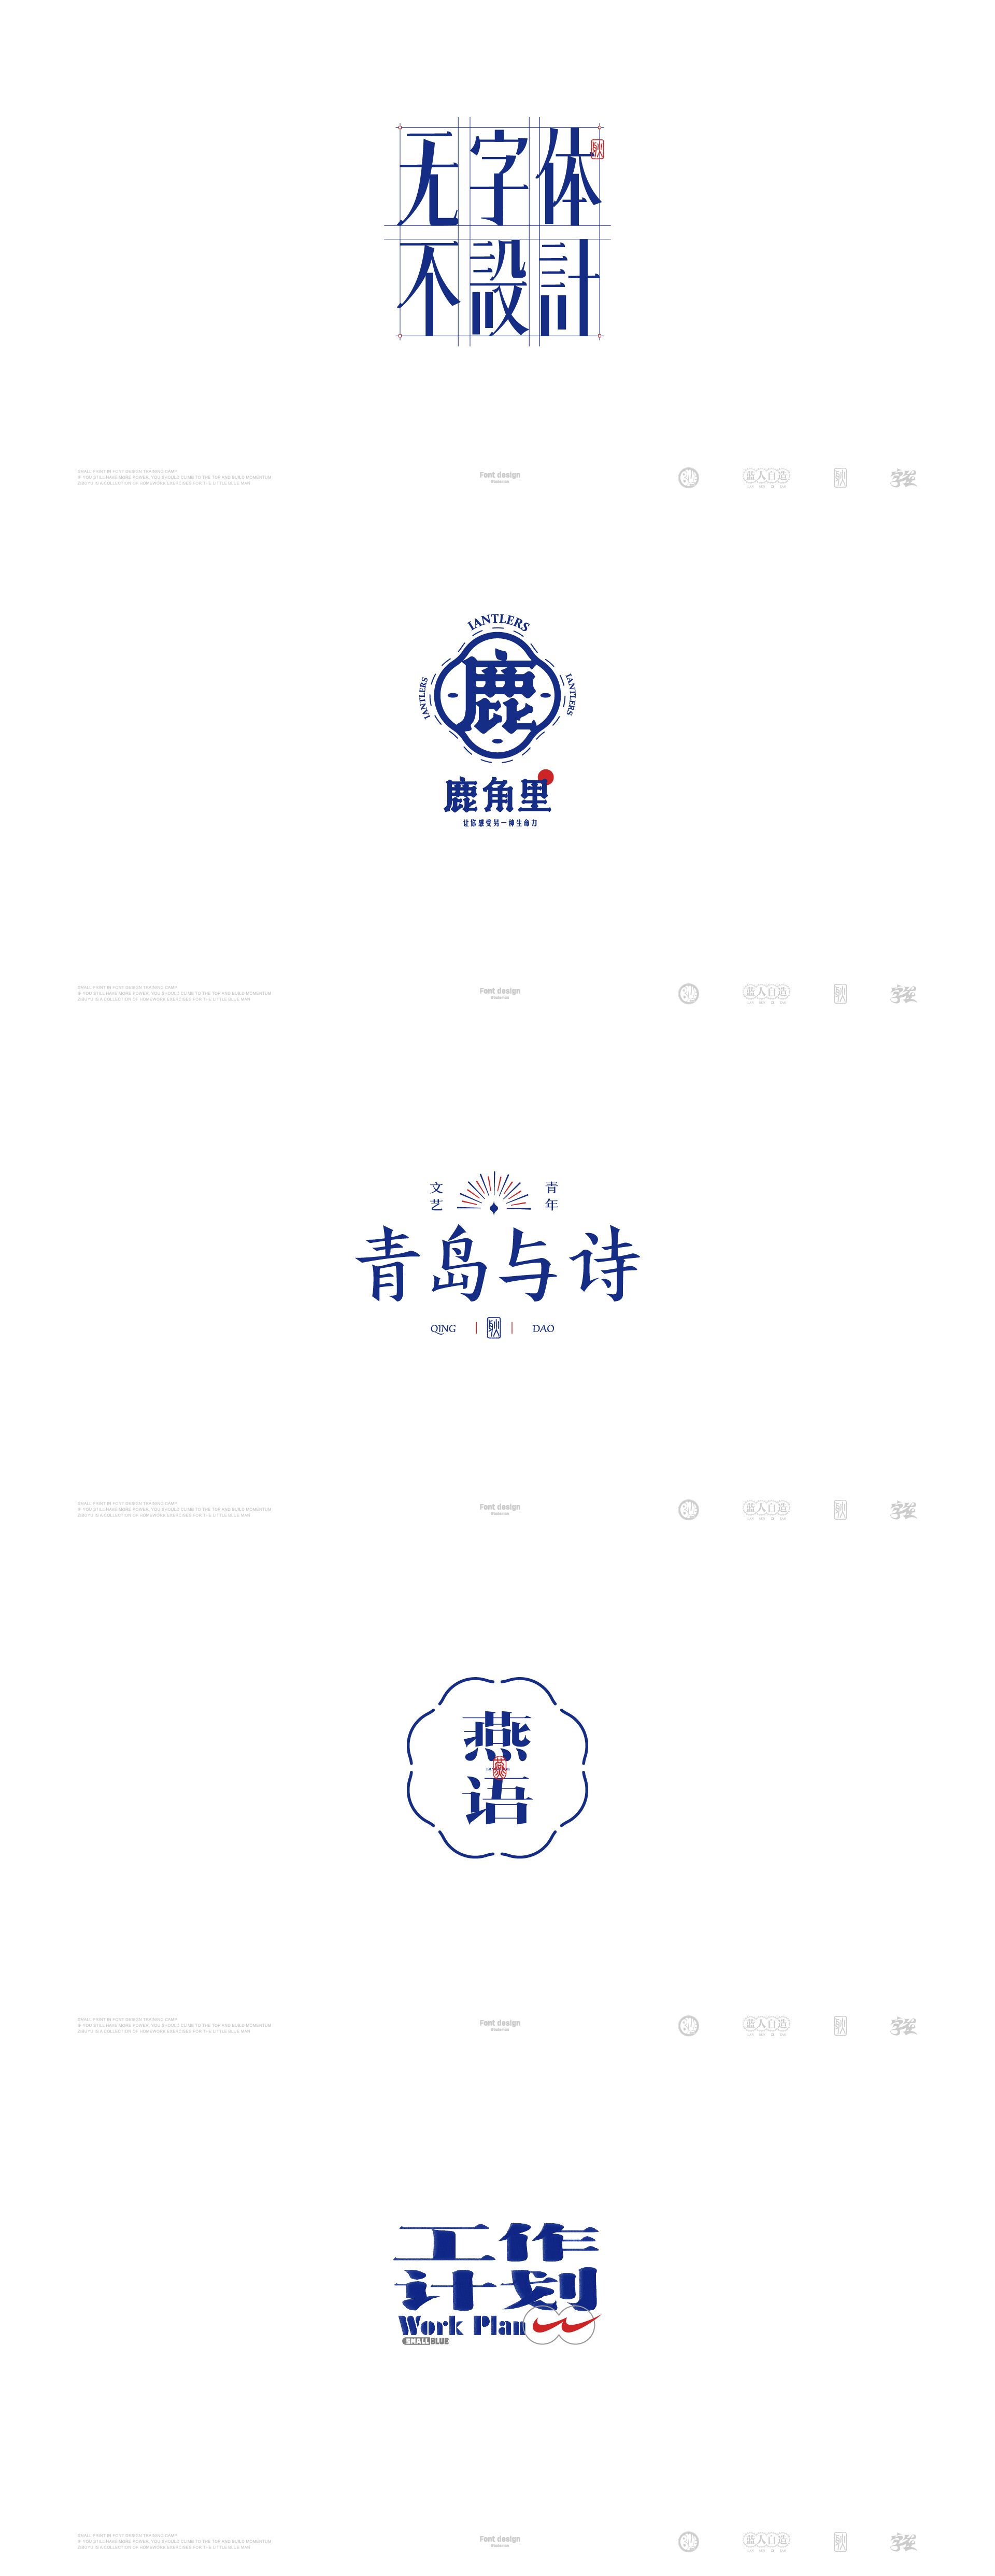 7P Collection of the latest Chinese font design schemes in 2021 #.282